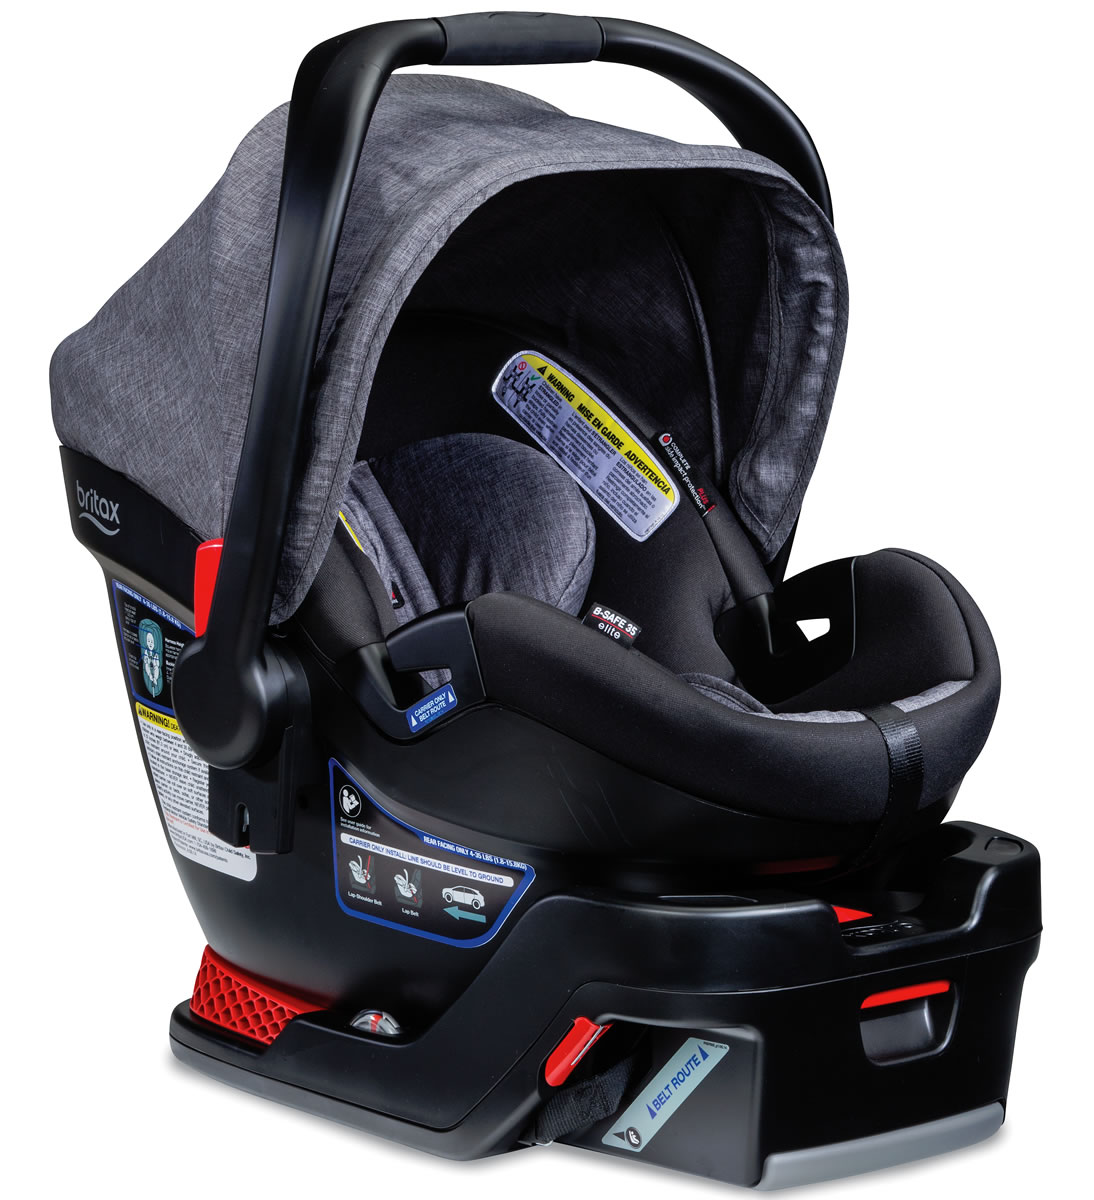 Graco Click Connect 30 35 Base besides Britax B Safe 35 Elite Infant Car Seat Vibe likewise MLM 575286254 Carriola Graco Literider Incluye Portabebe  JM additionally I furthermore Infant Car Seat Adapter Frame. on snugride car seat stroller